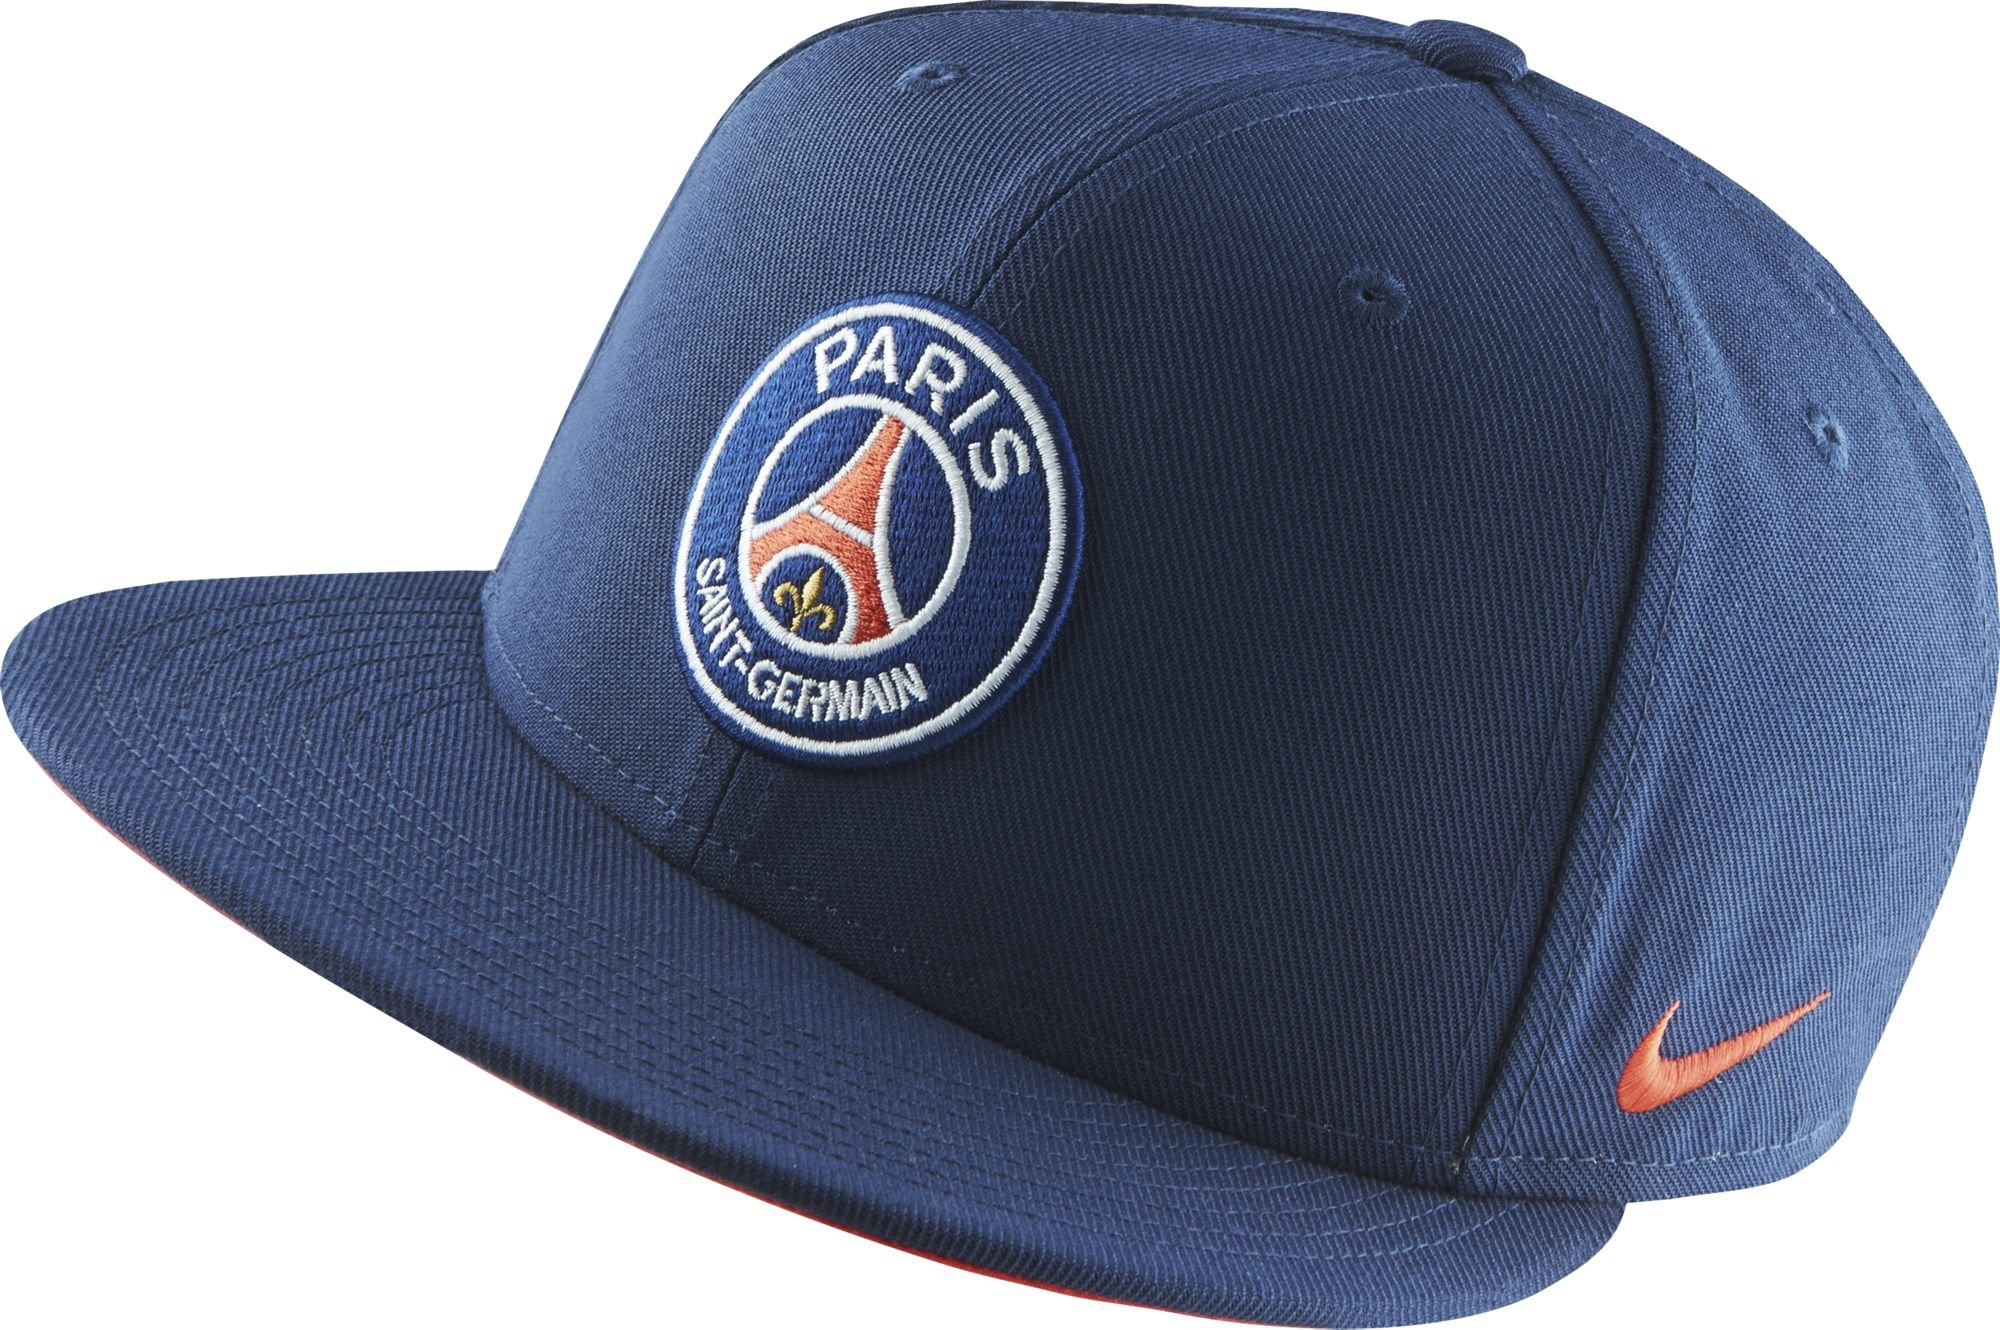 Buy 2015-2016 PSG Nike Core Adjustable Cap (Navy) in Cheap Price on  m.alibaba.com 462dc89953f